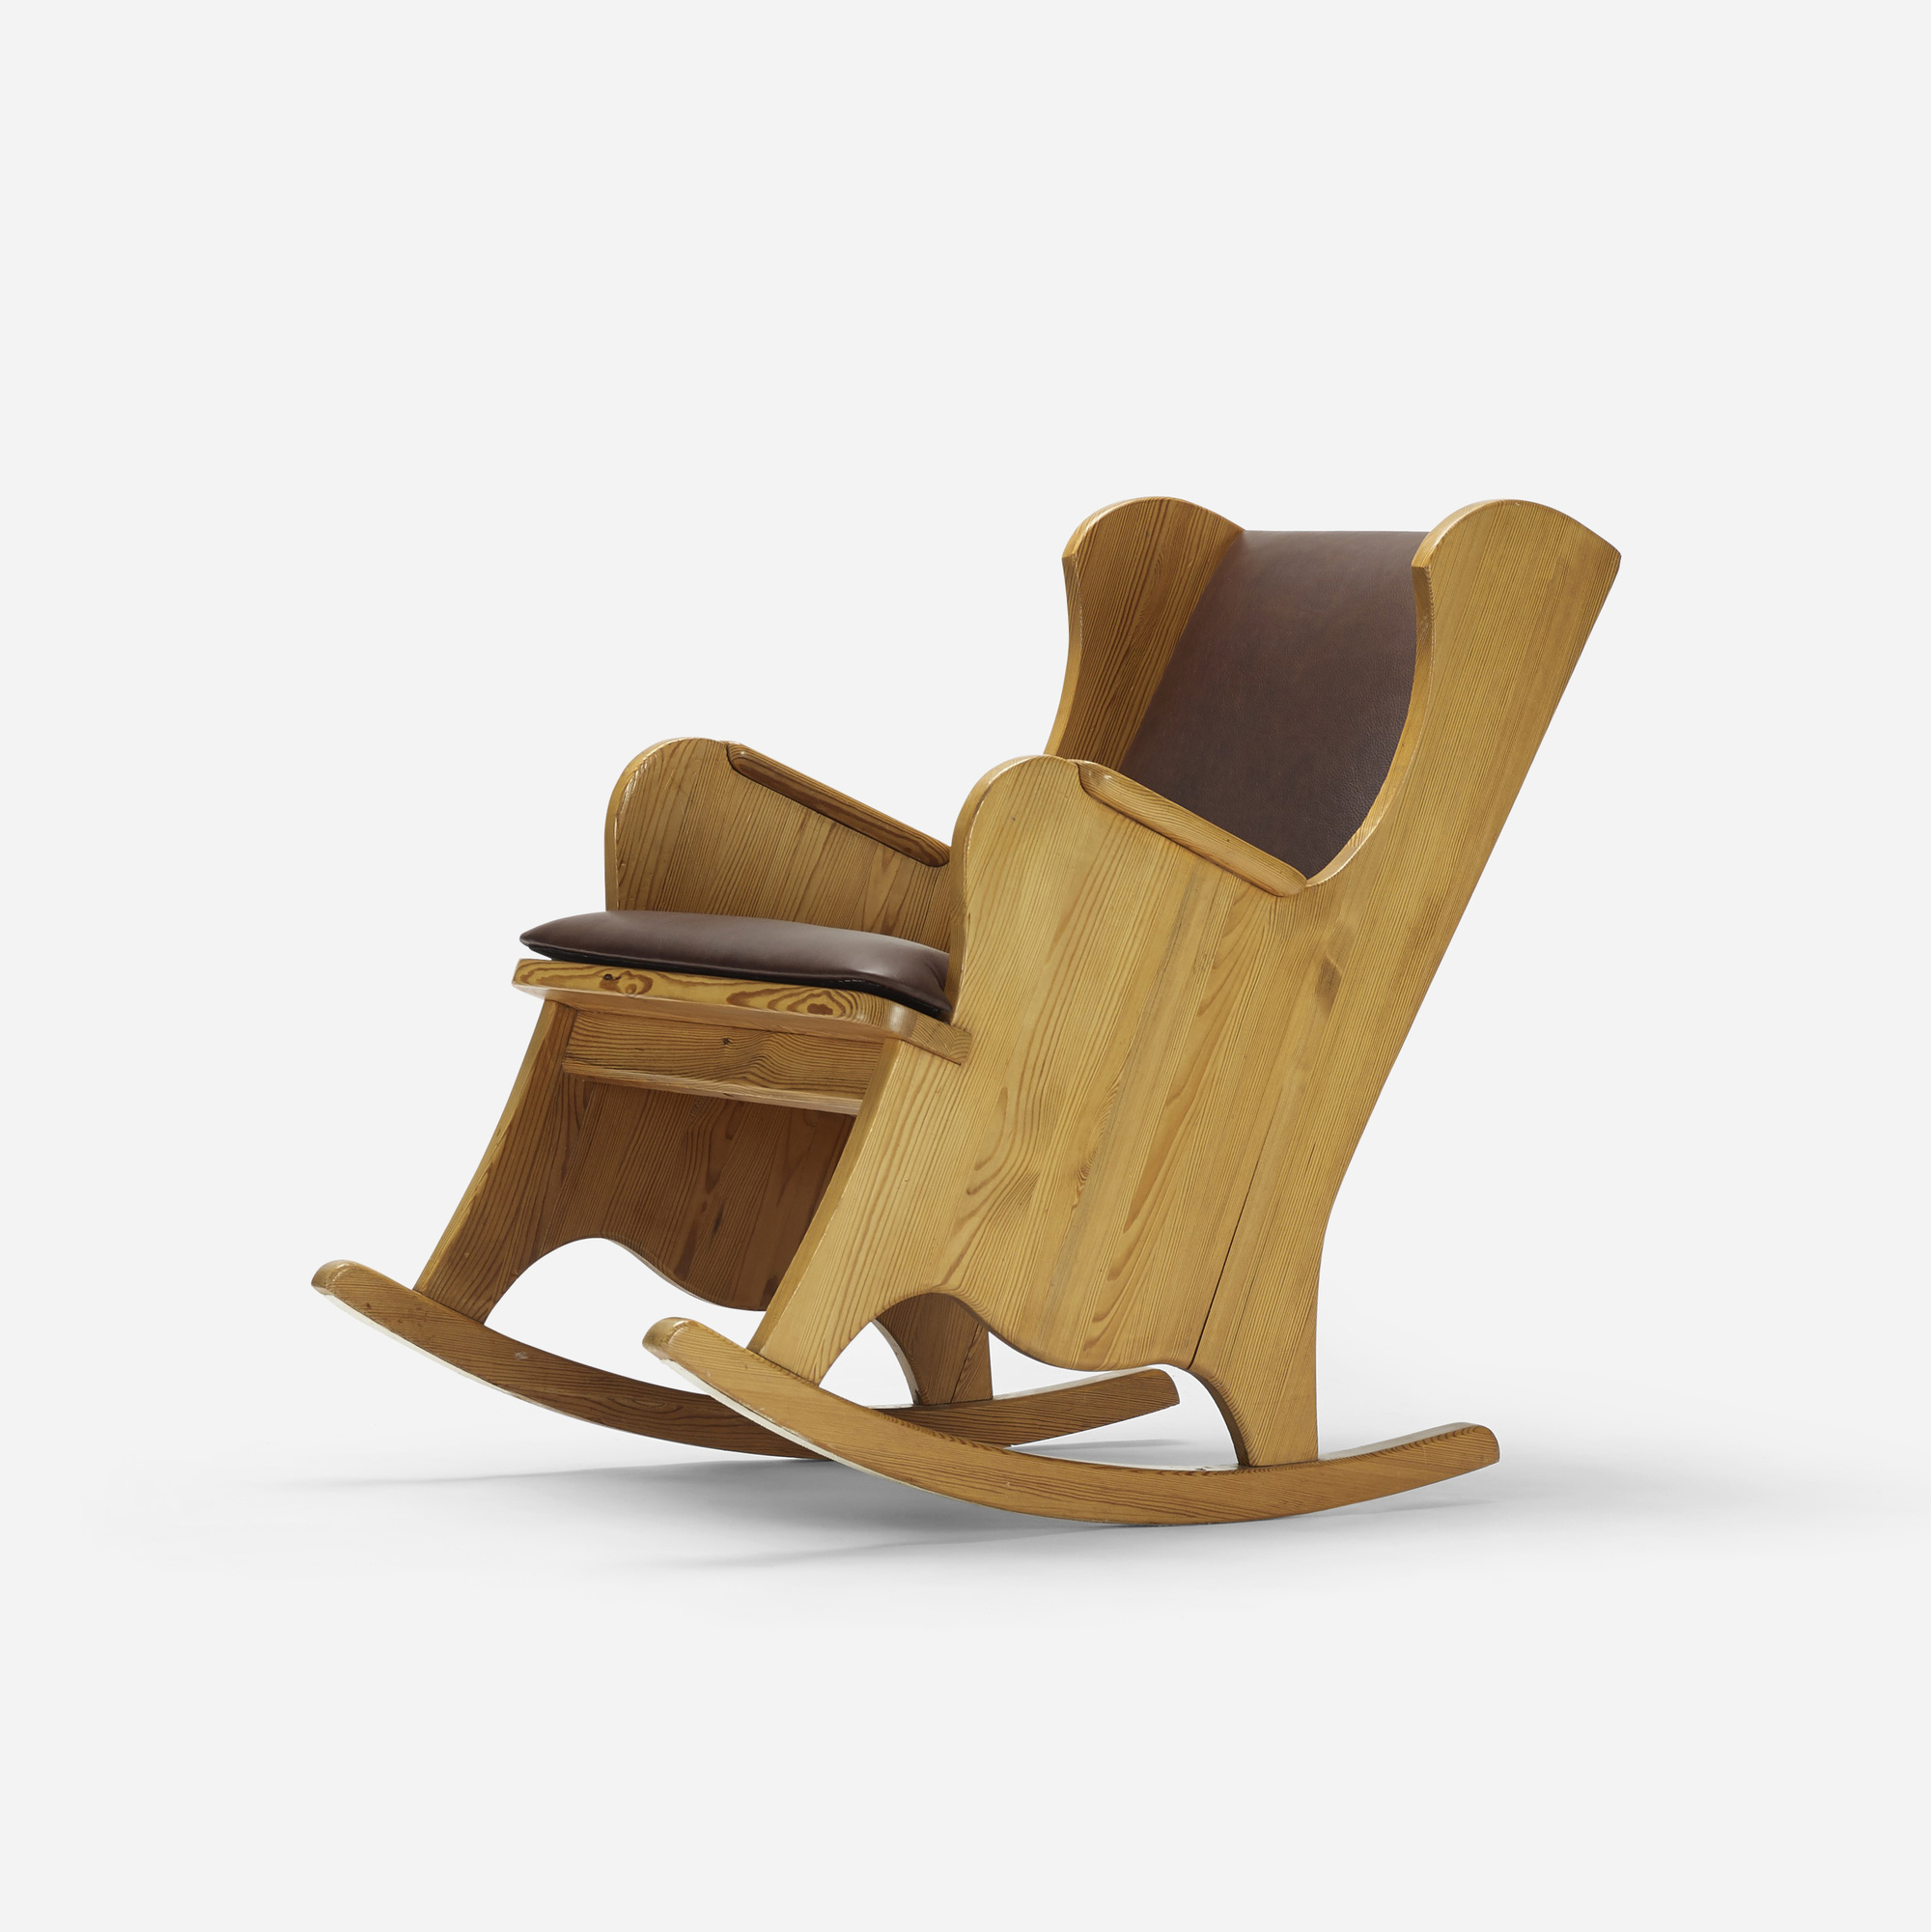 246: Axel Einar Hjorth / Lovo rocking chair (1 of 2)